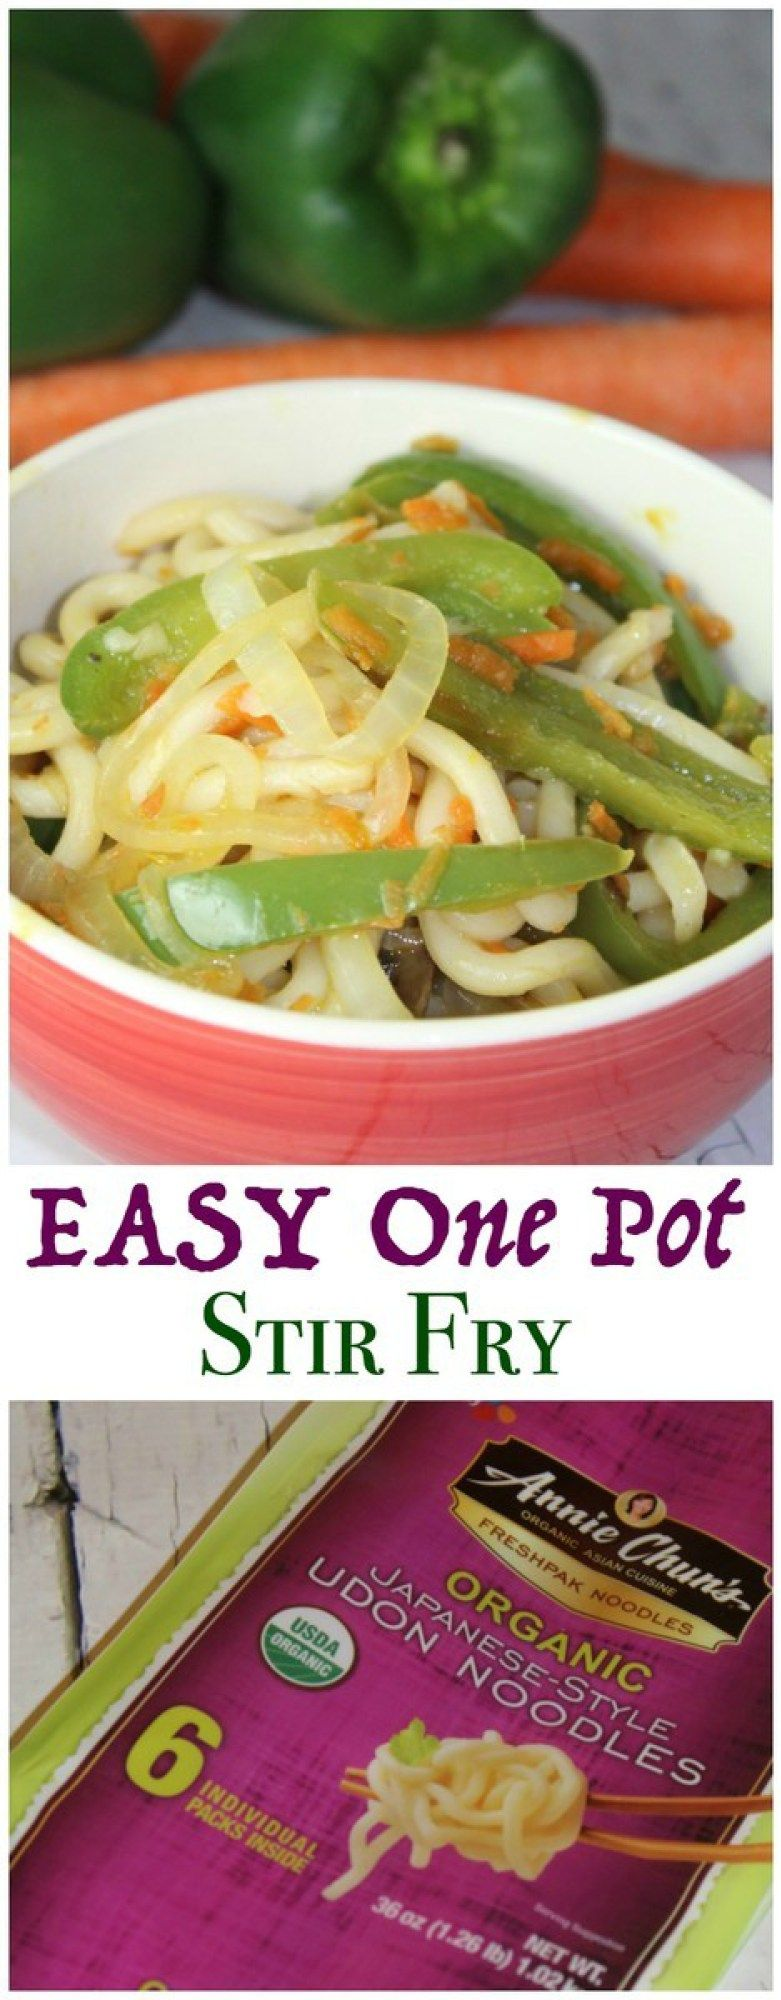 Easy One Pot Stir Fry is the perfect dinner for a night when you ...